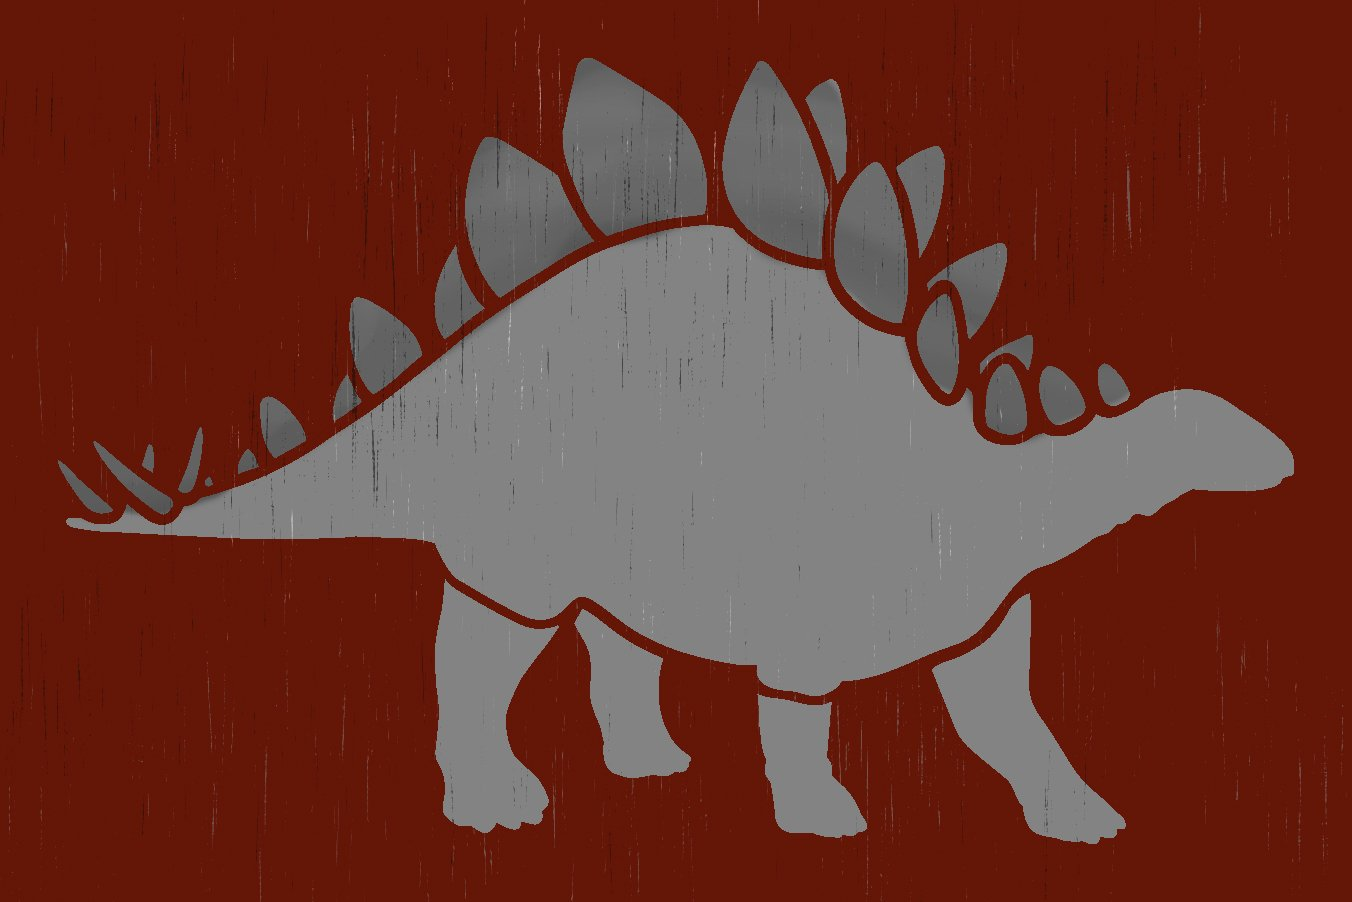 Stegosaurus Stencil by StudioR12 | DIY Nursery & Bedroom Decor | Create Dino Party Decorations | Craft & Paint Wood Signs | Select Size